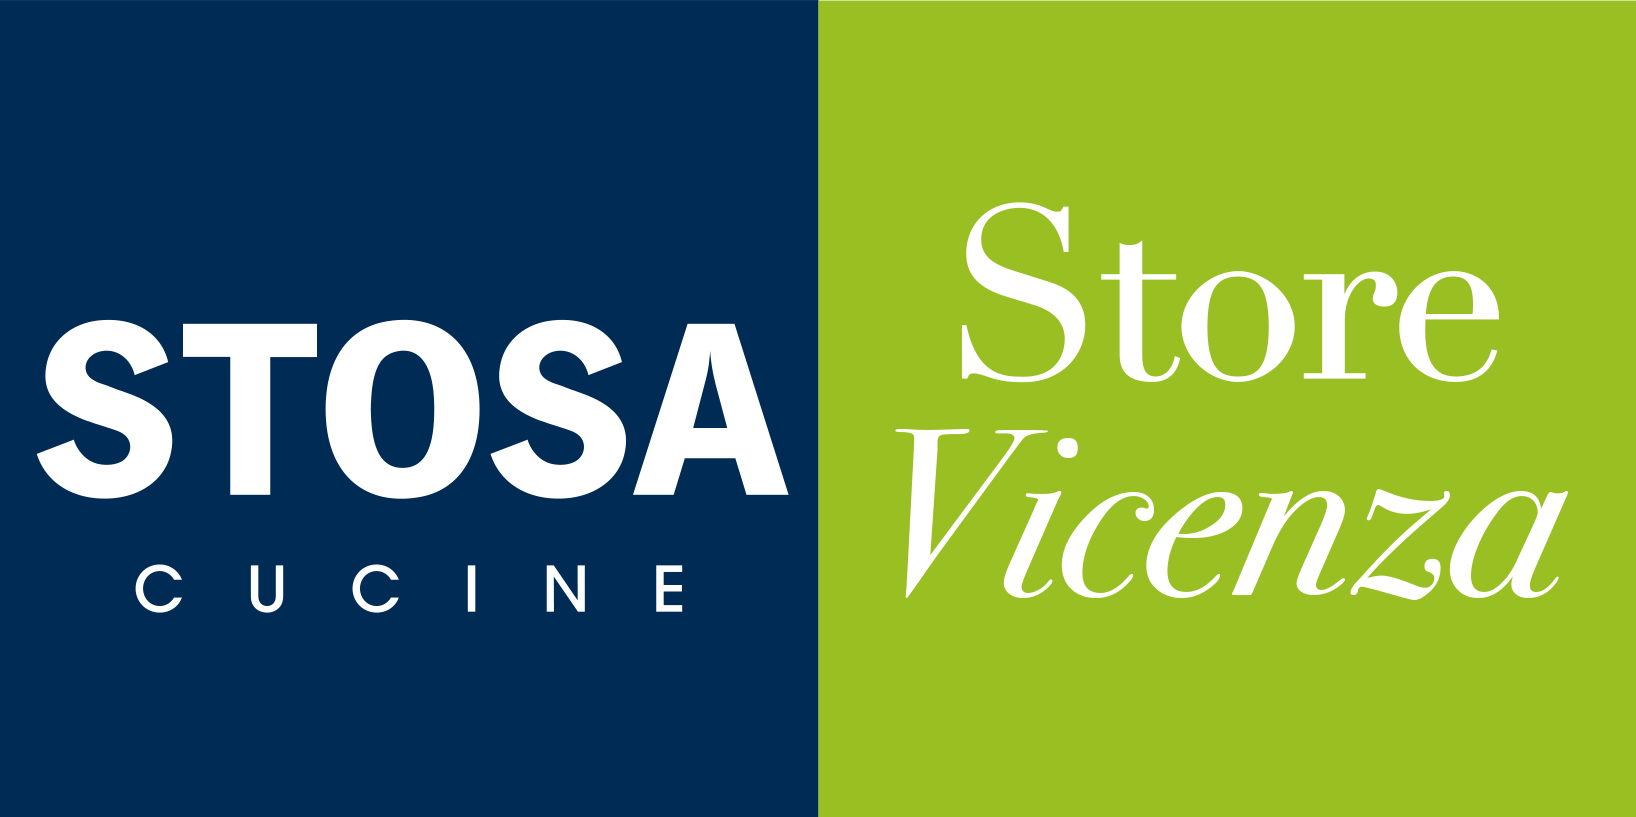 Stosa Store Vicenza